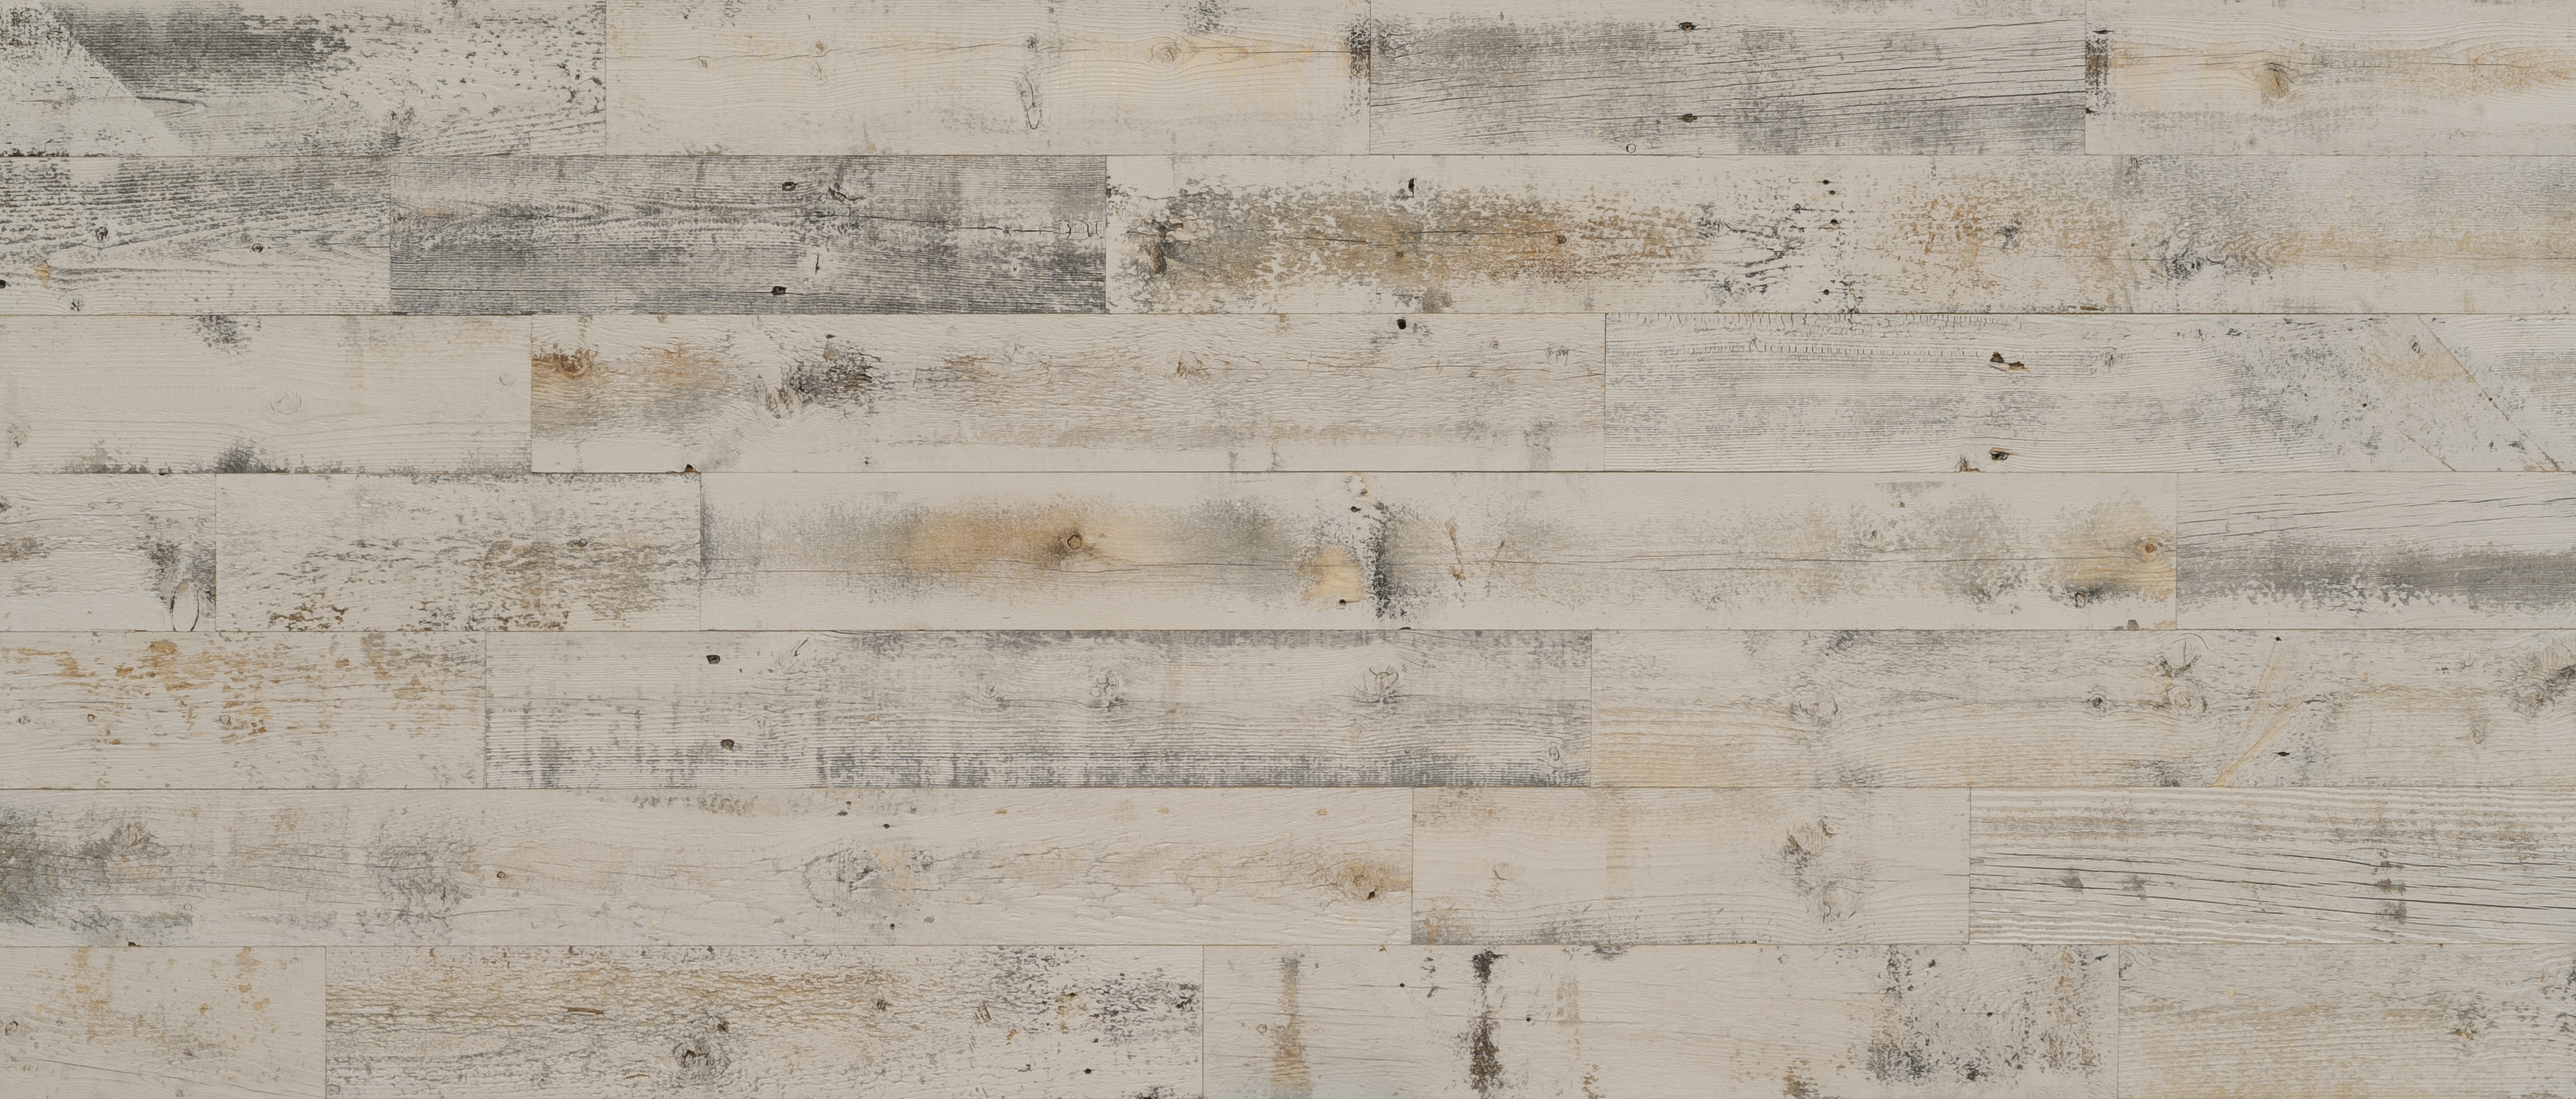 Stikwood Reclaimed Weathered Wood Gray material explorer | real reclaimed barnwood pine peel and stick wood wall and ceiling planks with light, gray, tan, black and brown colors.